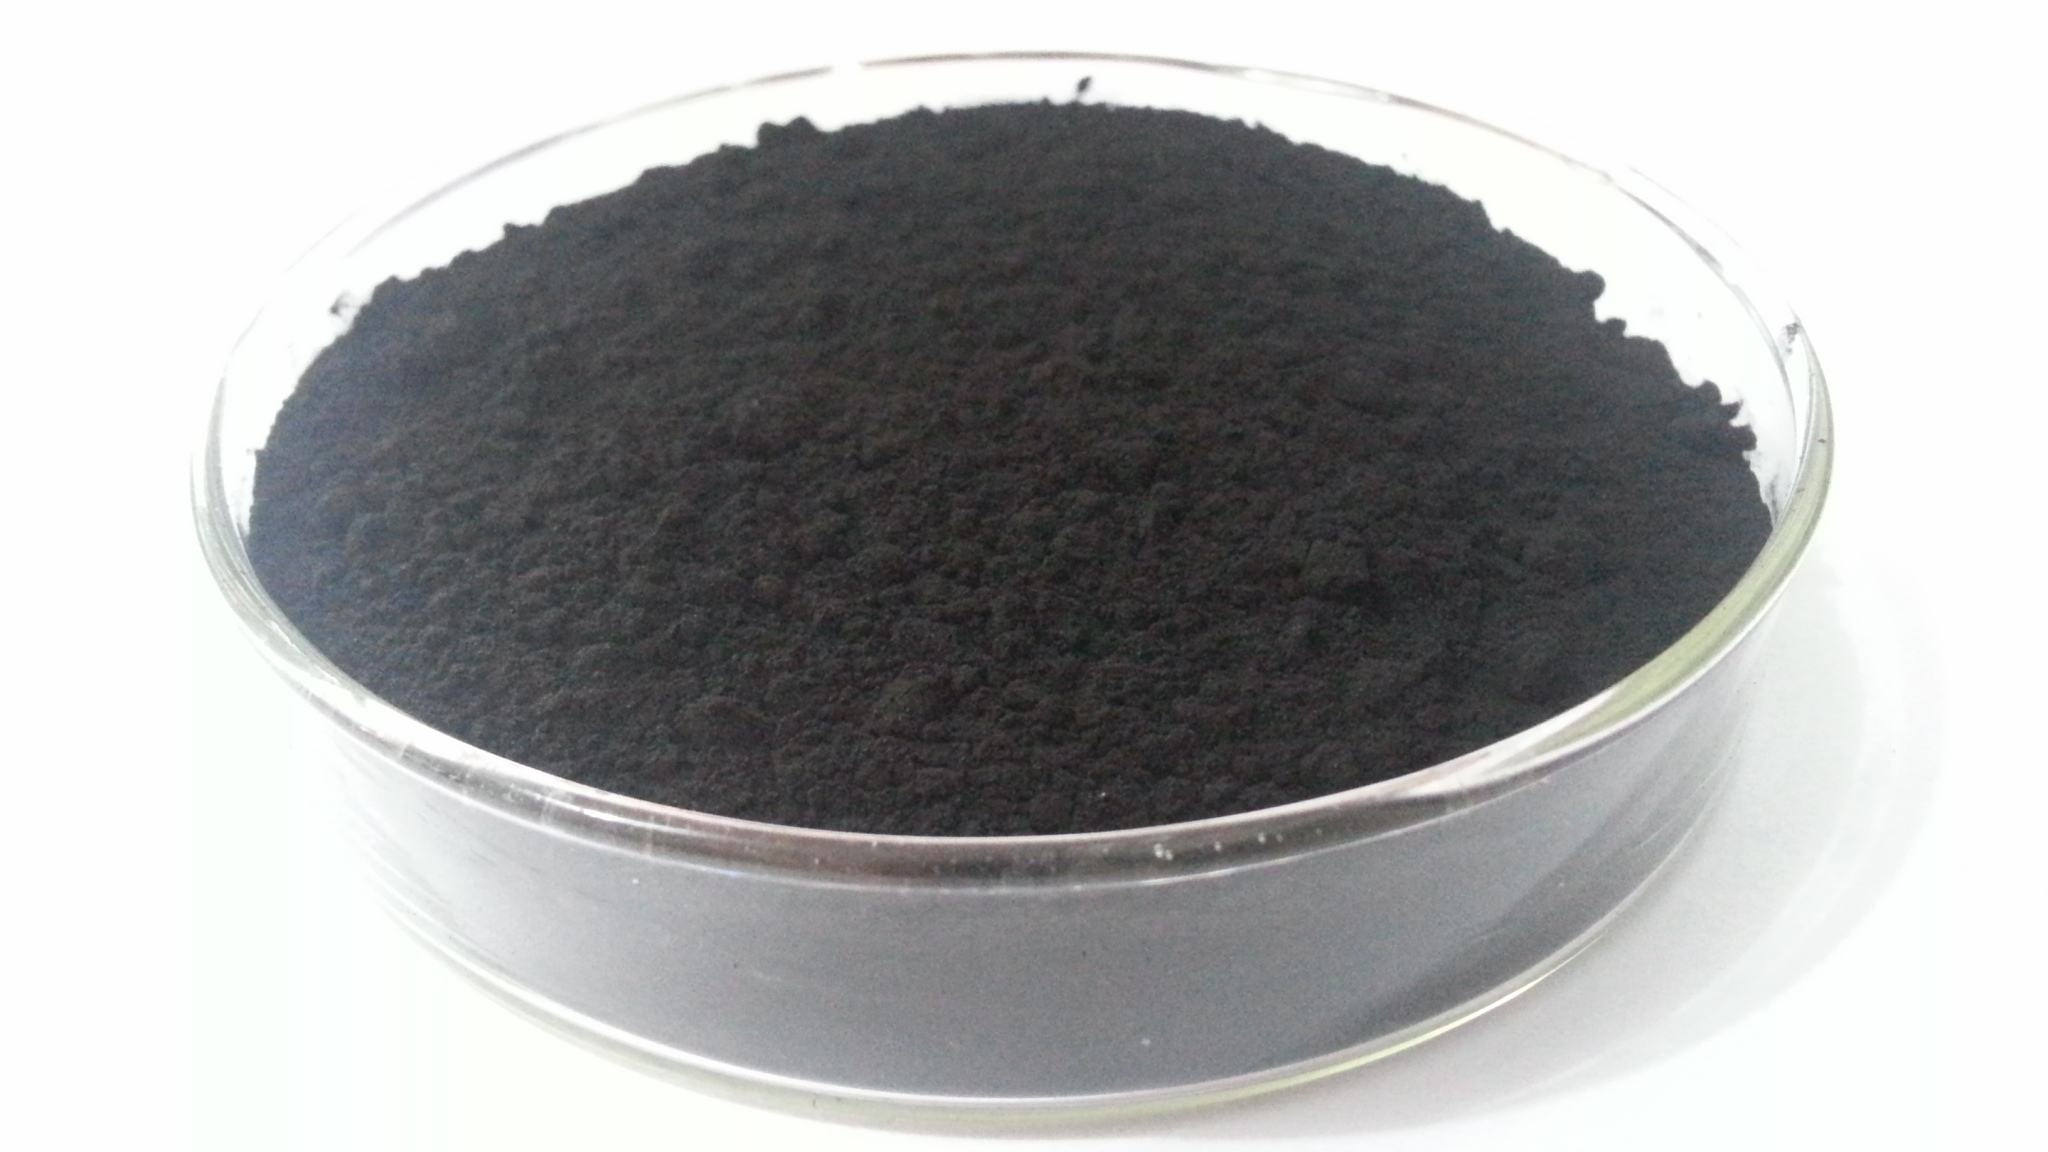 Sodium humate uses in feed additive for livestock.